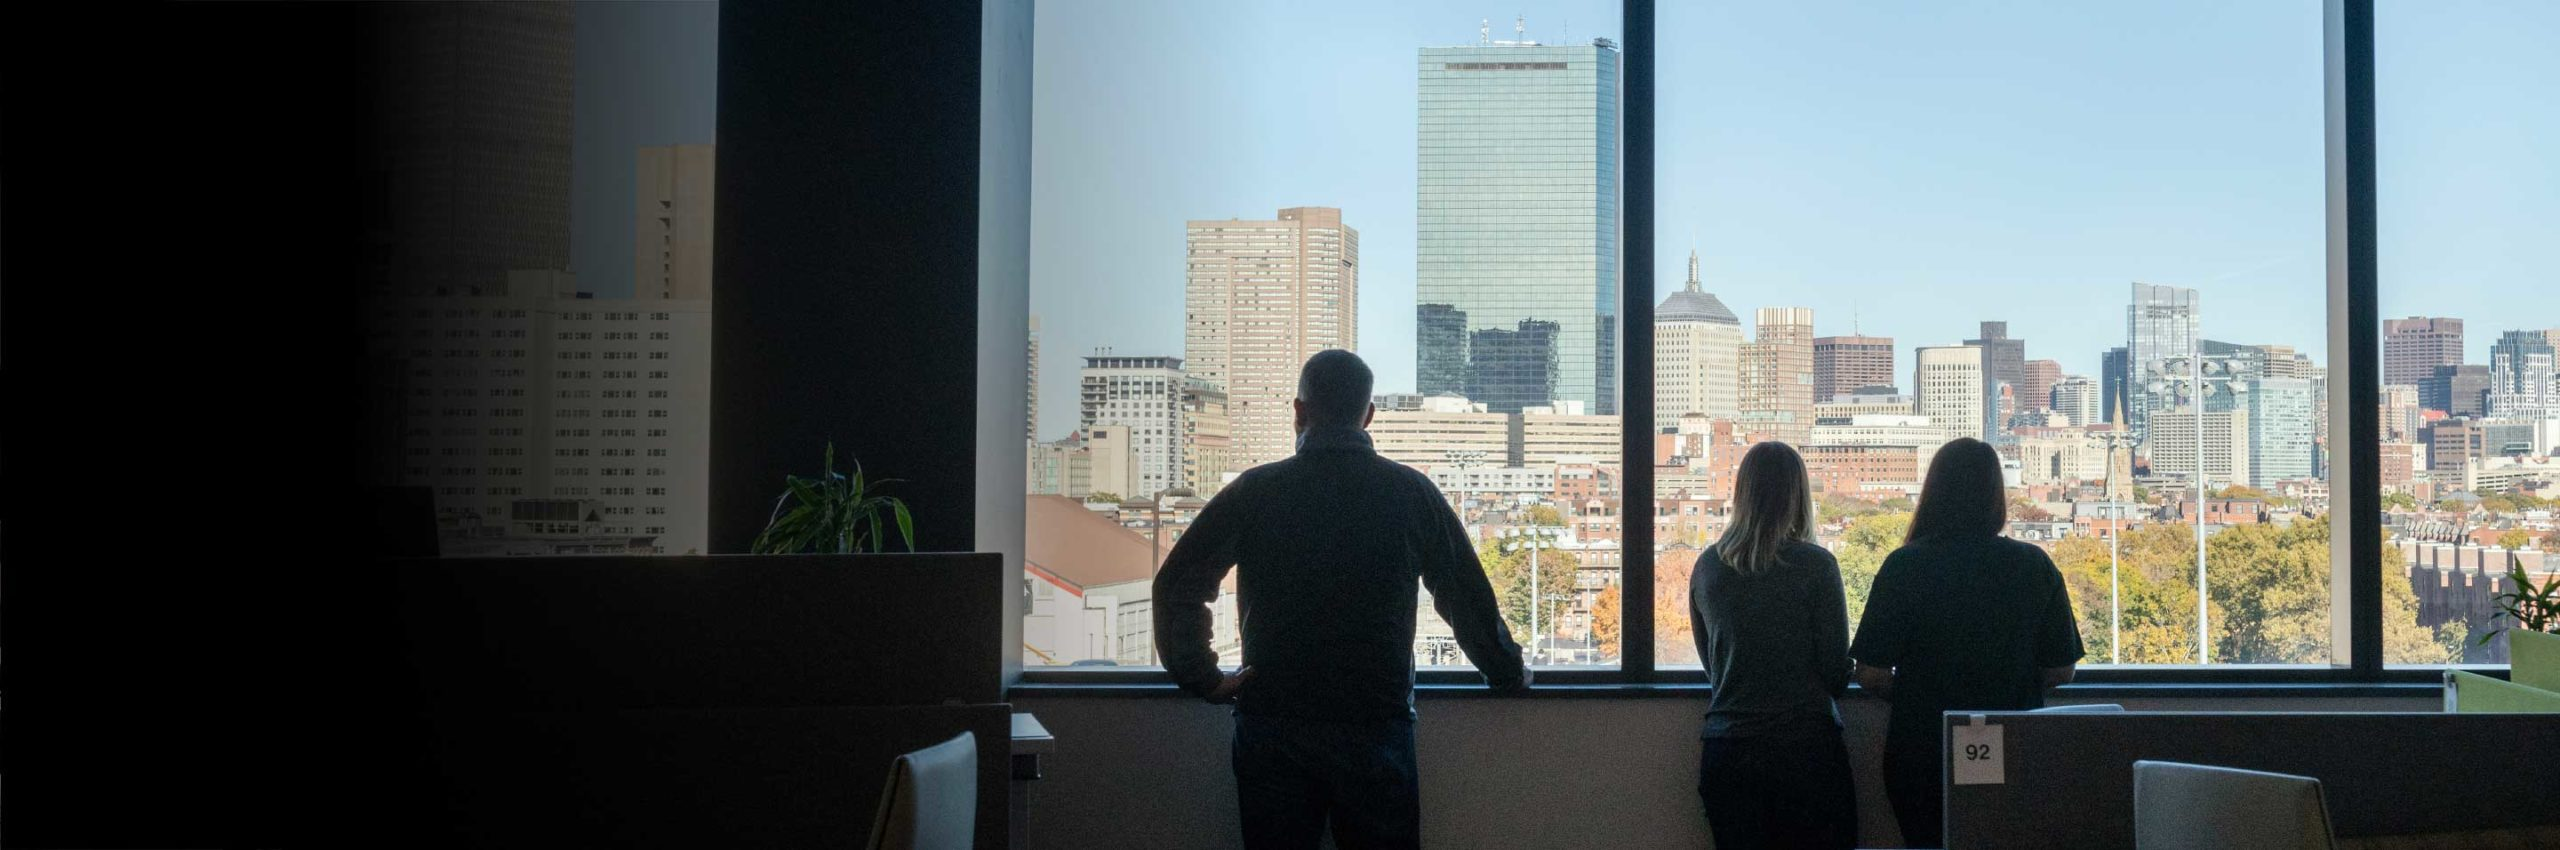 Students look at the skyline of Boston